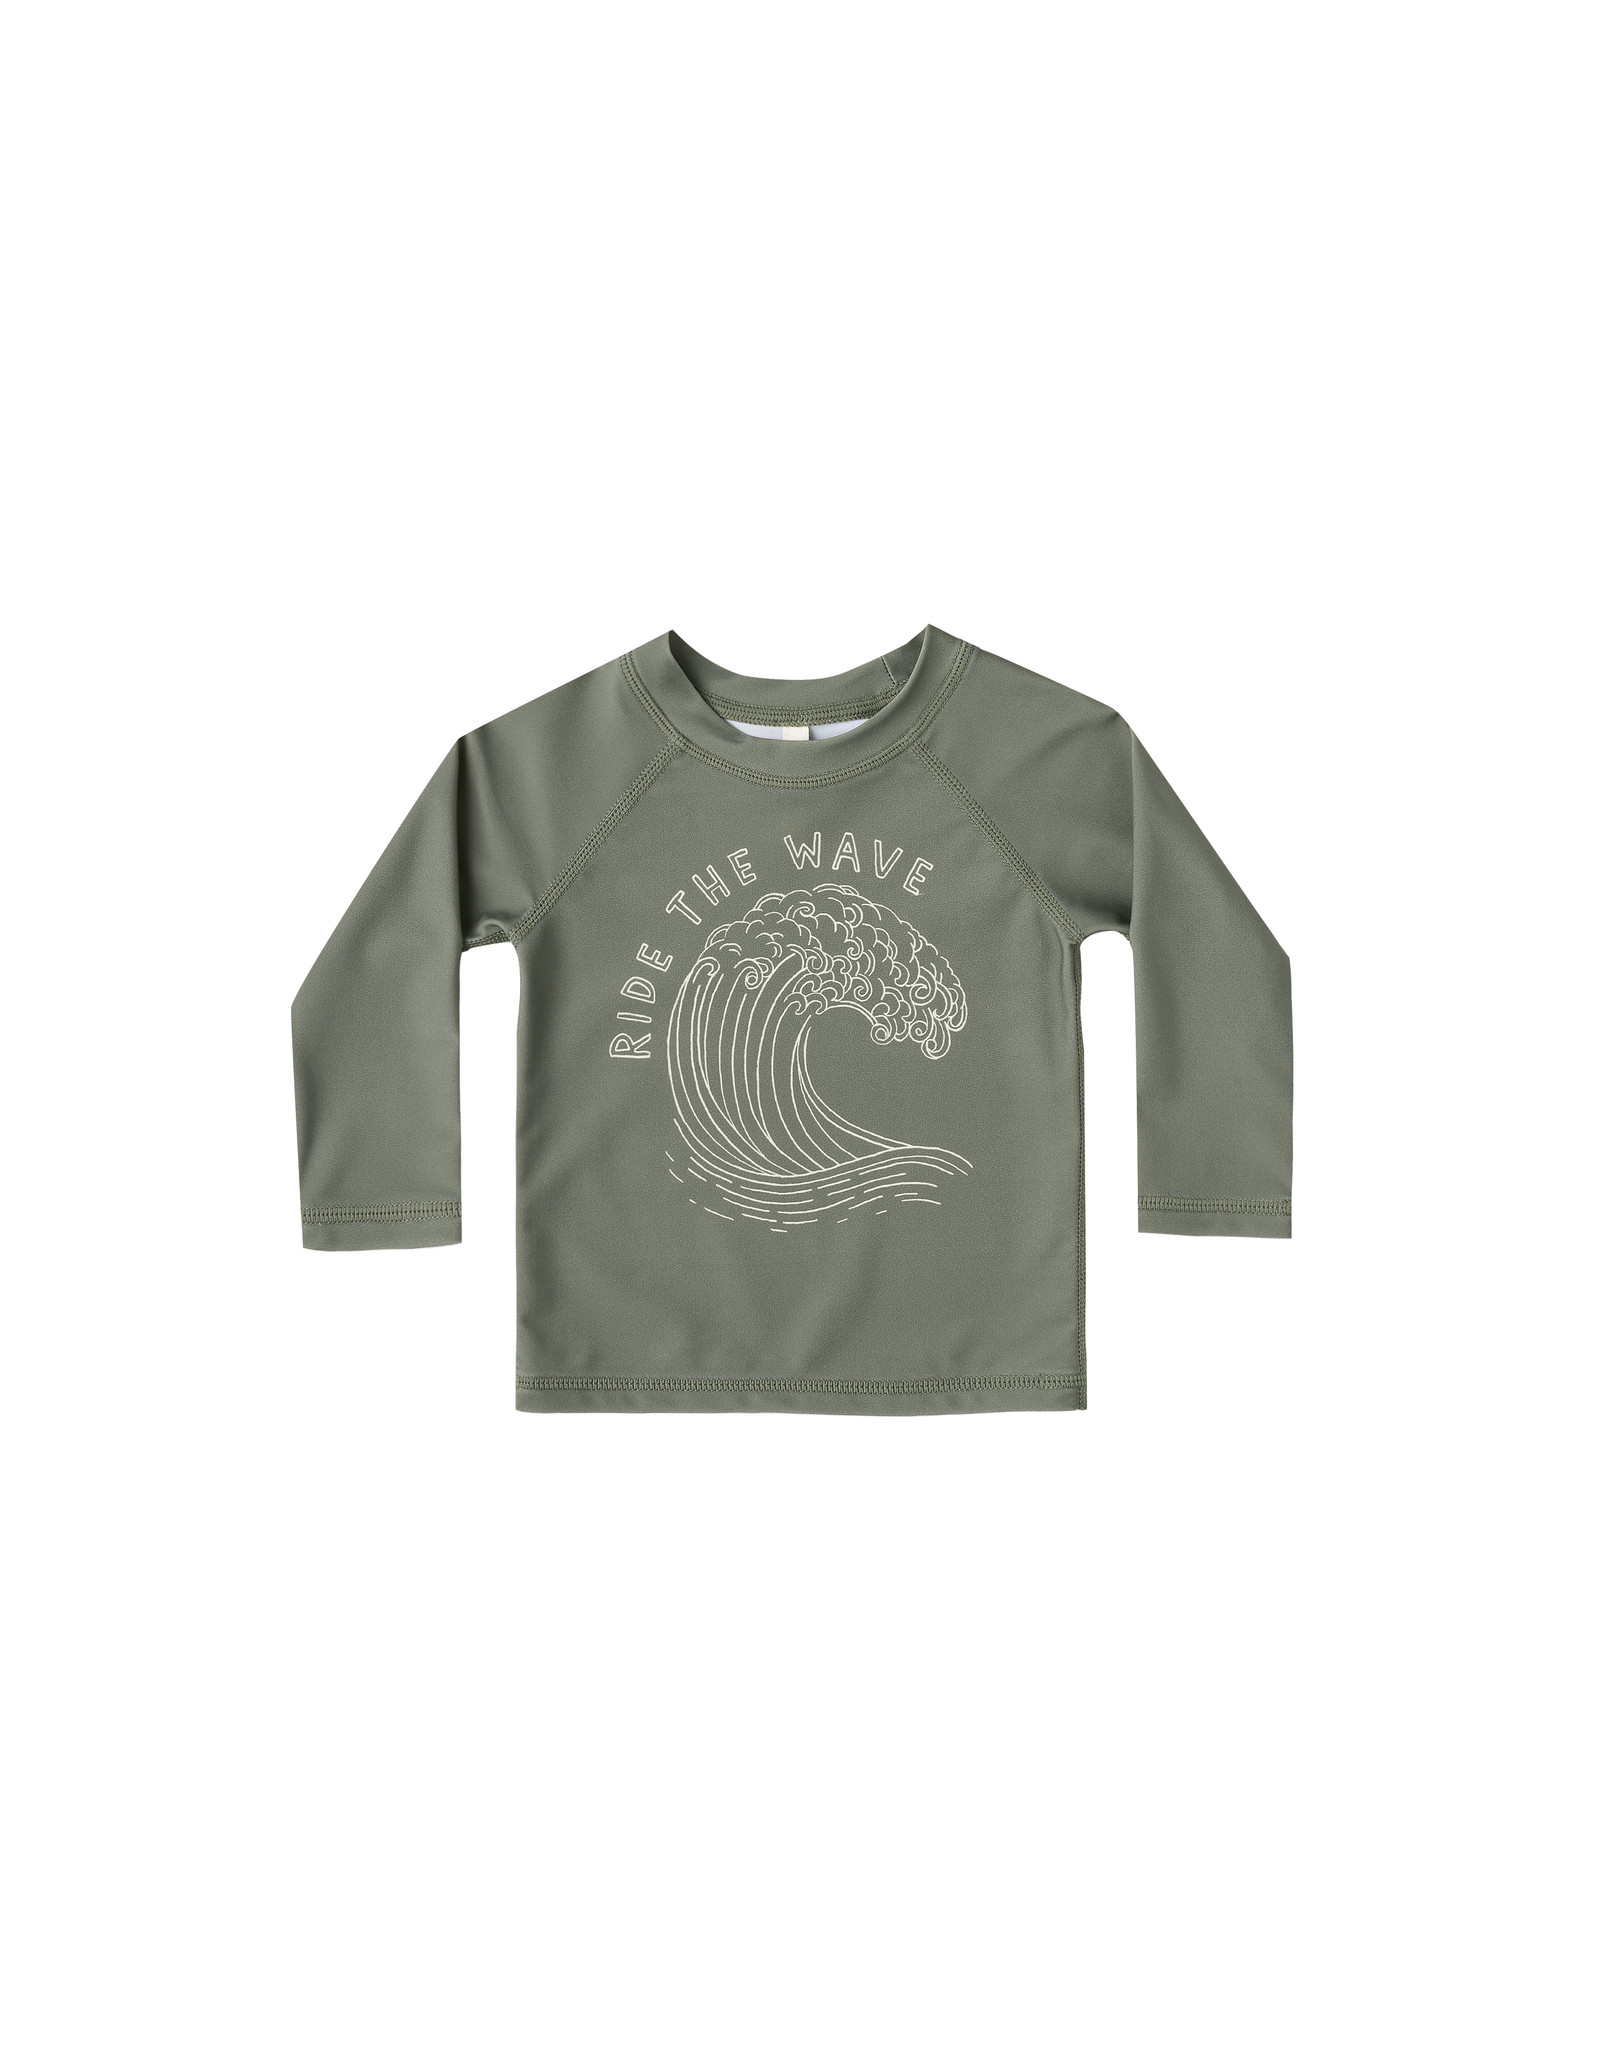 Rylee + Cru Ride The Wave Rashguard